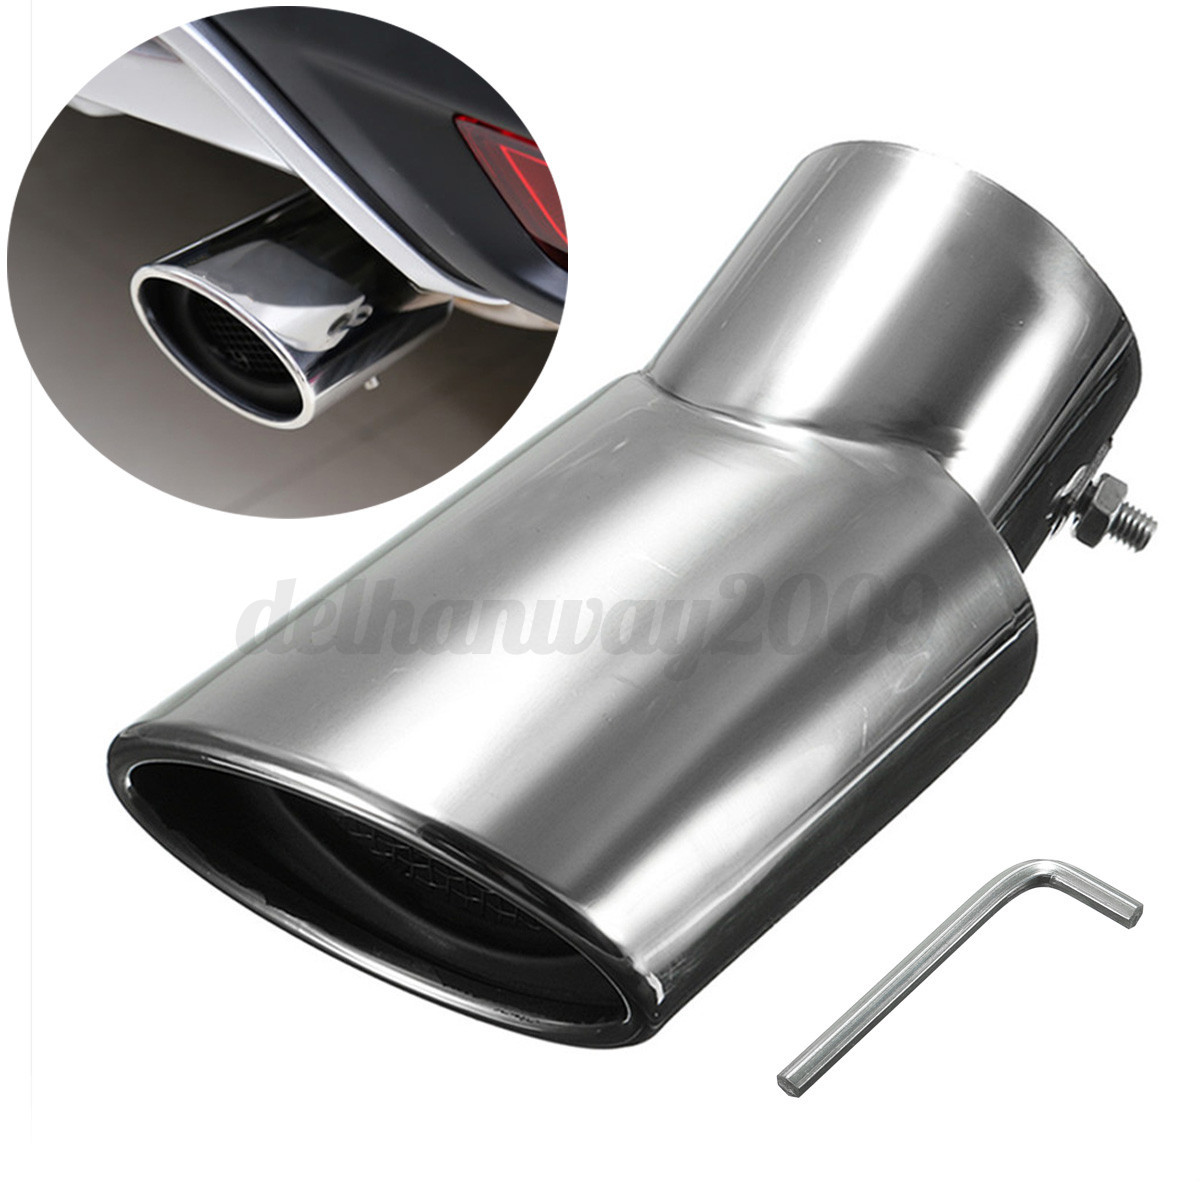 Ford Ranger Exhaust Tip >> Through Body Exhaust Tip.html | Autos Post